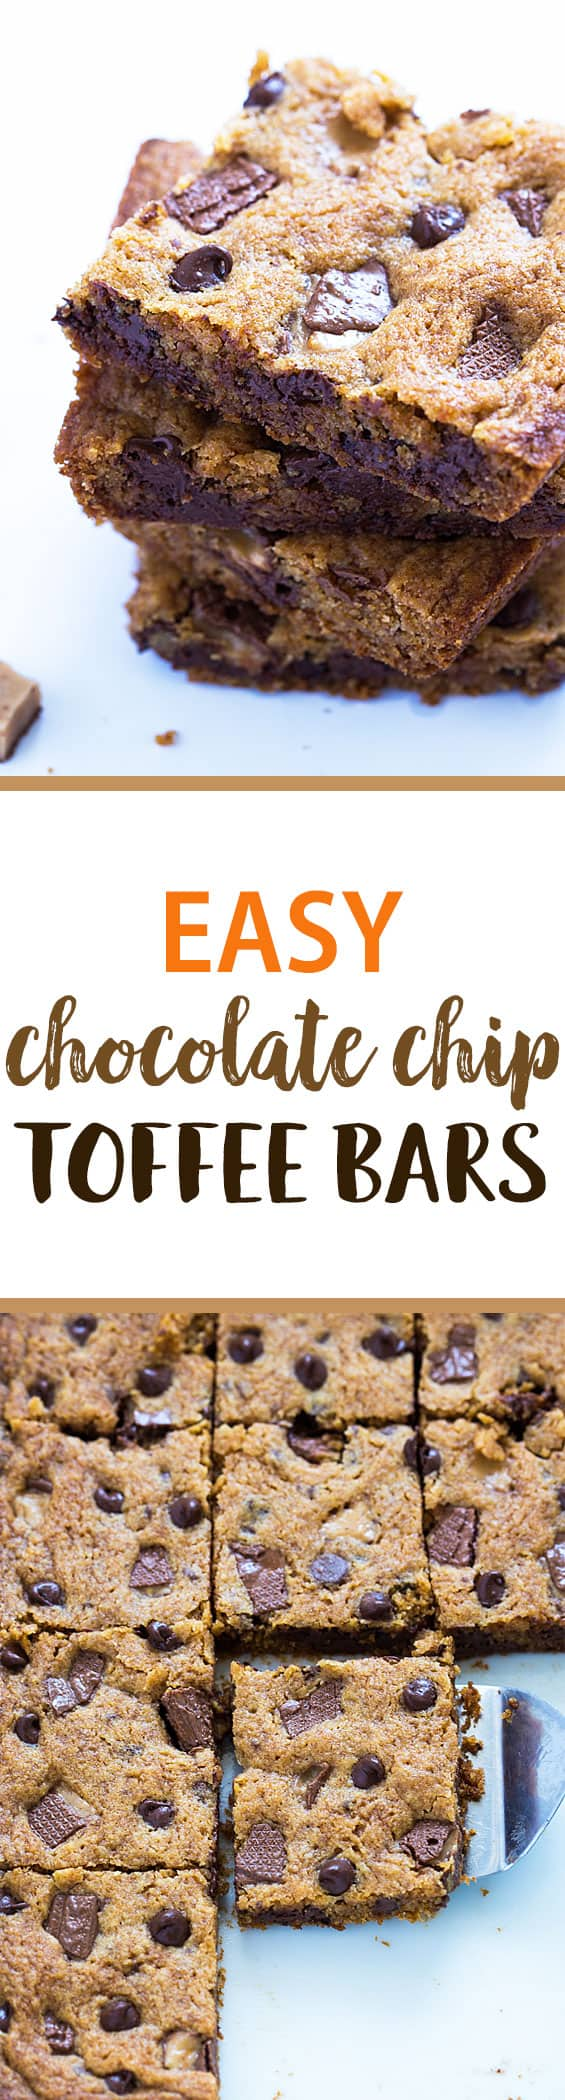 A two image vertical collage of easy chocolate chip toffee bars with overlay text in the center.